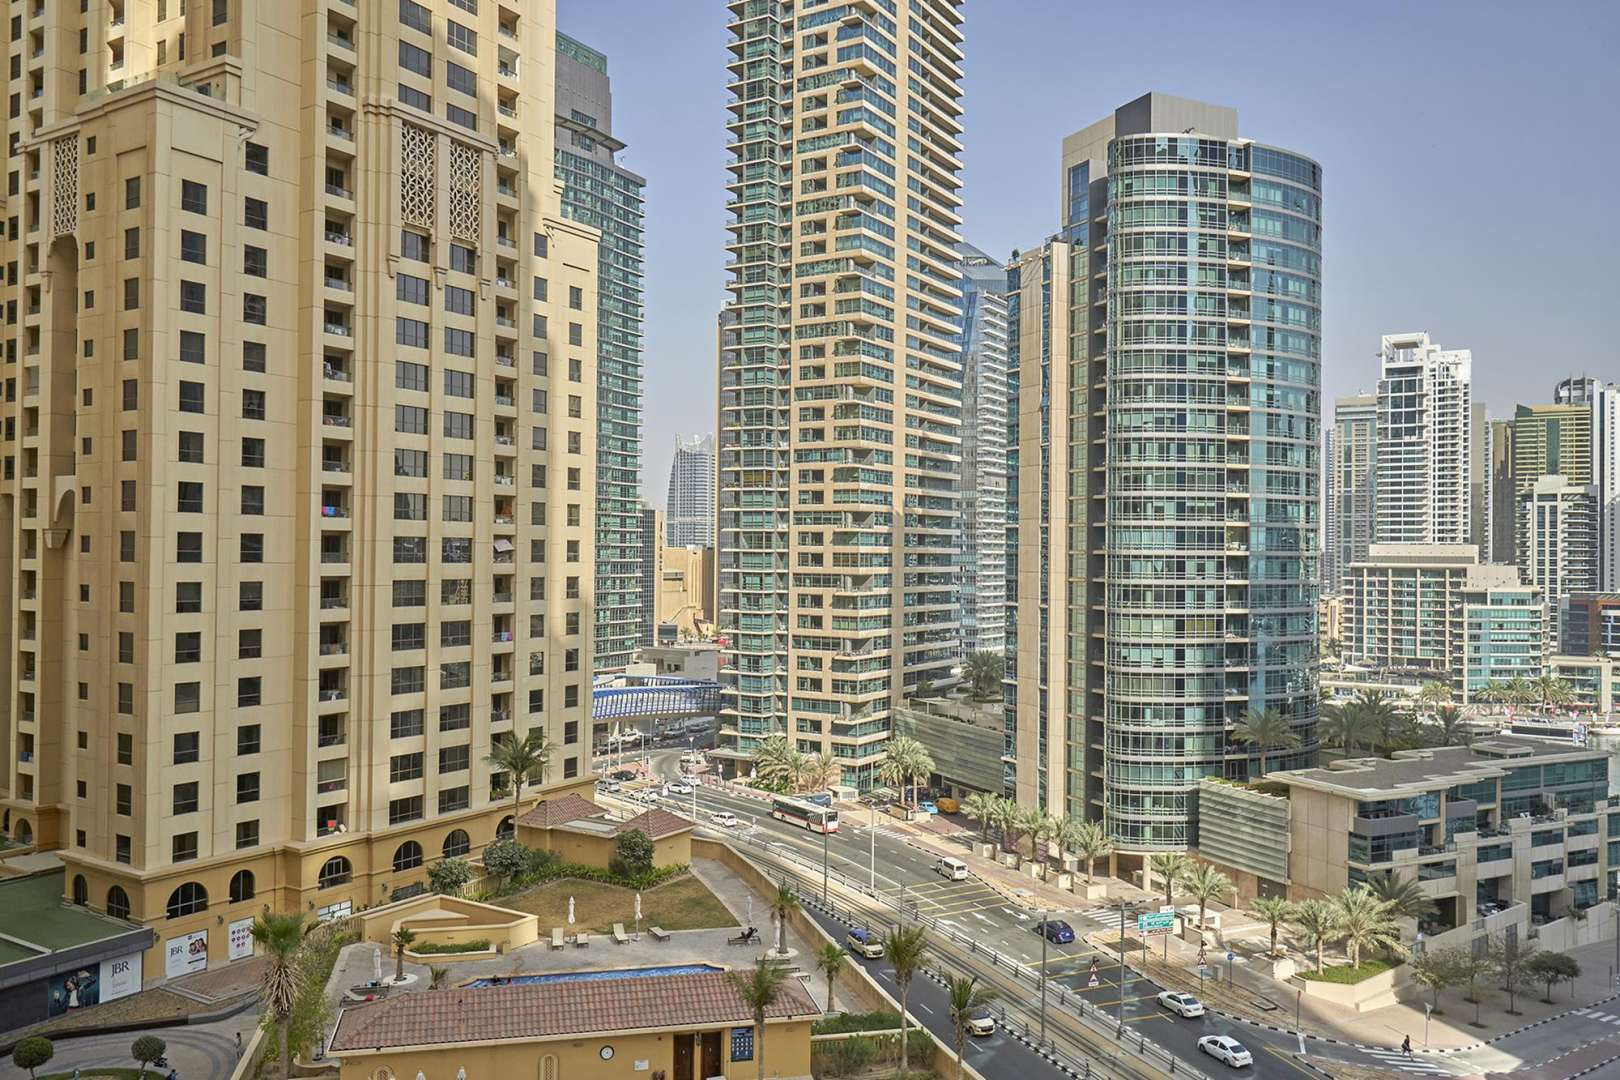 Apartments For Sale In Rimal 4, Rimal : Buy Houses